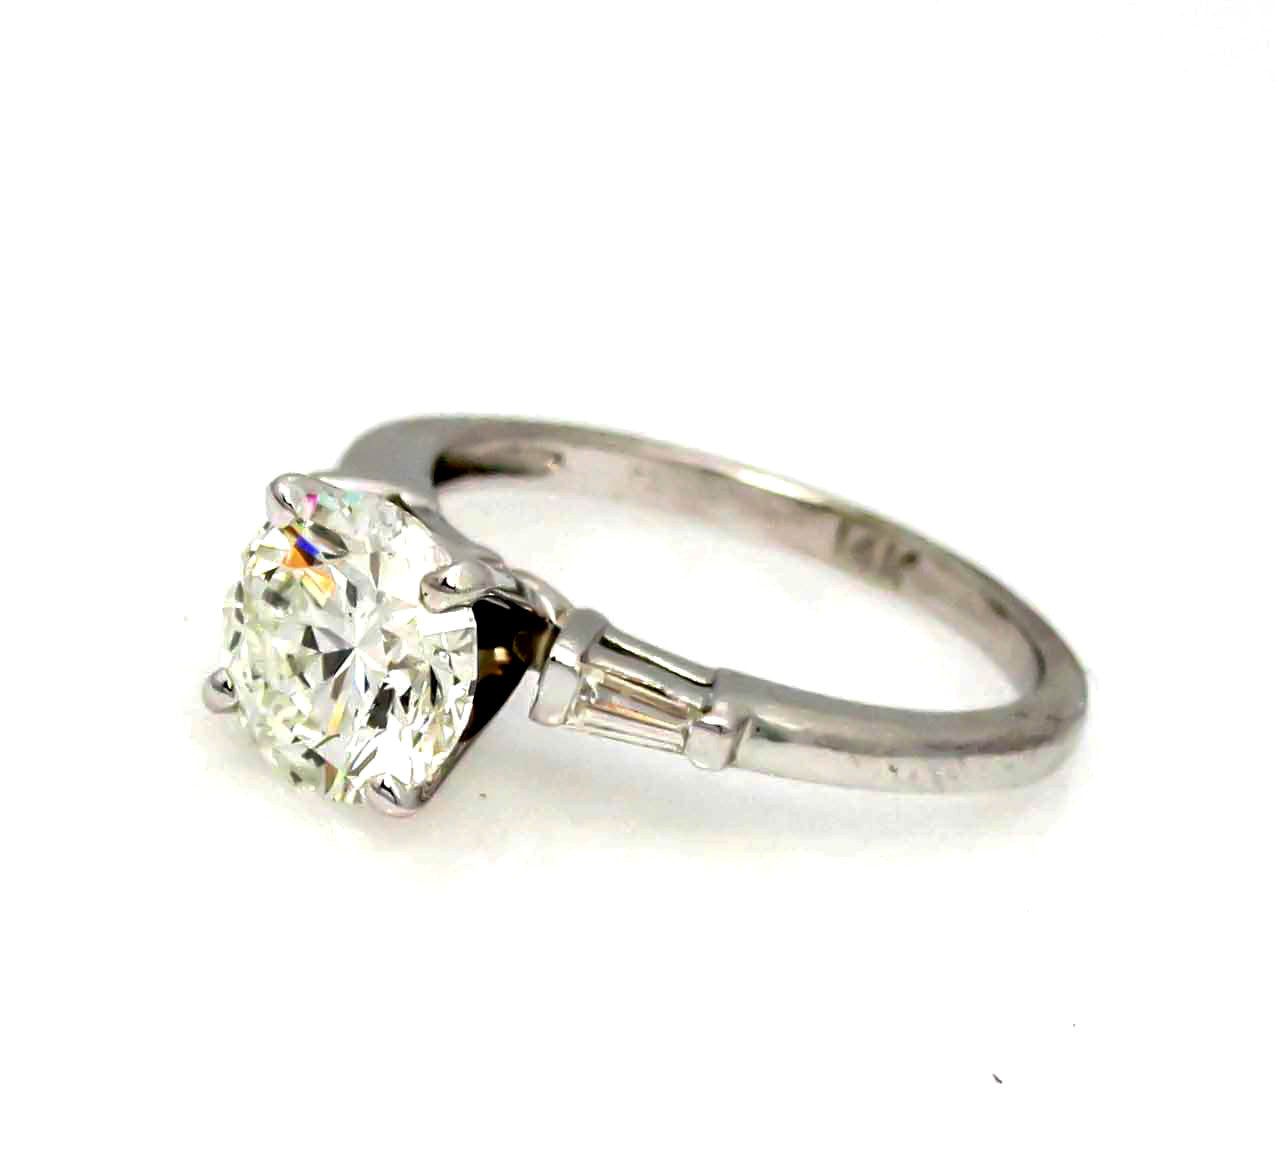 Moissanite Engagement Ring, With Unique 2 Carat Brilliant Cut Forever One Moissanite & .20 Carat Baguette Diamond, Anniversary - FO2JRER539